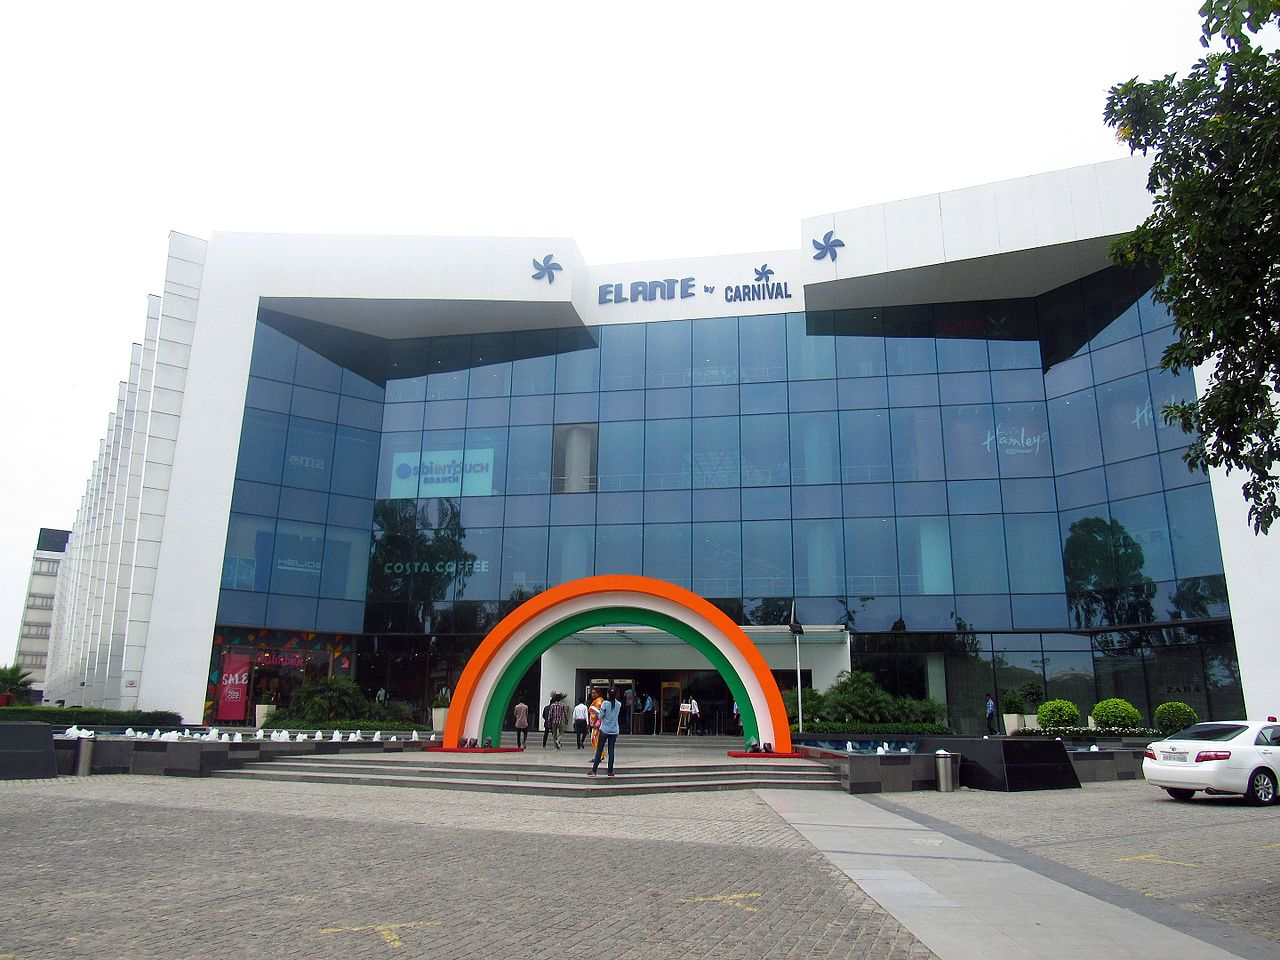 Visiting The Grand Elante Mall-Things To Do In Chandigarh